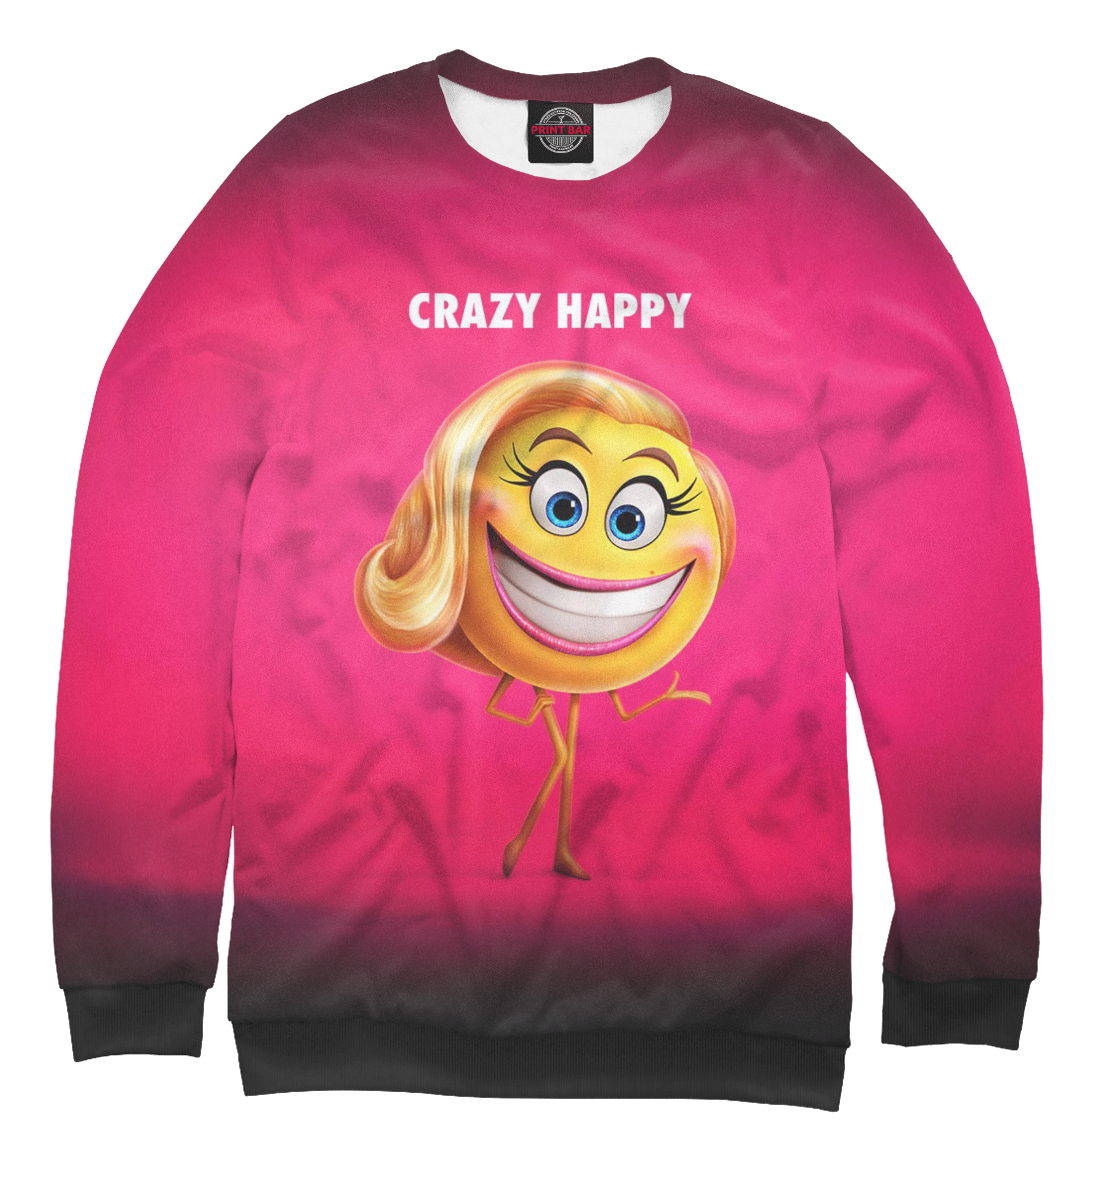 Купить Crazy Happy, Printbar, Свитшоты, EMJ-645138-swi-2